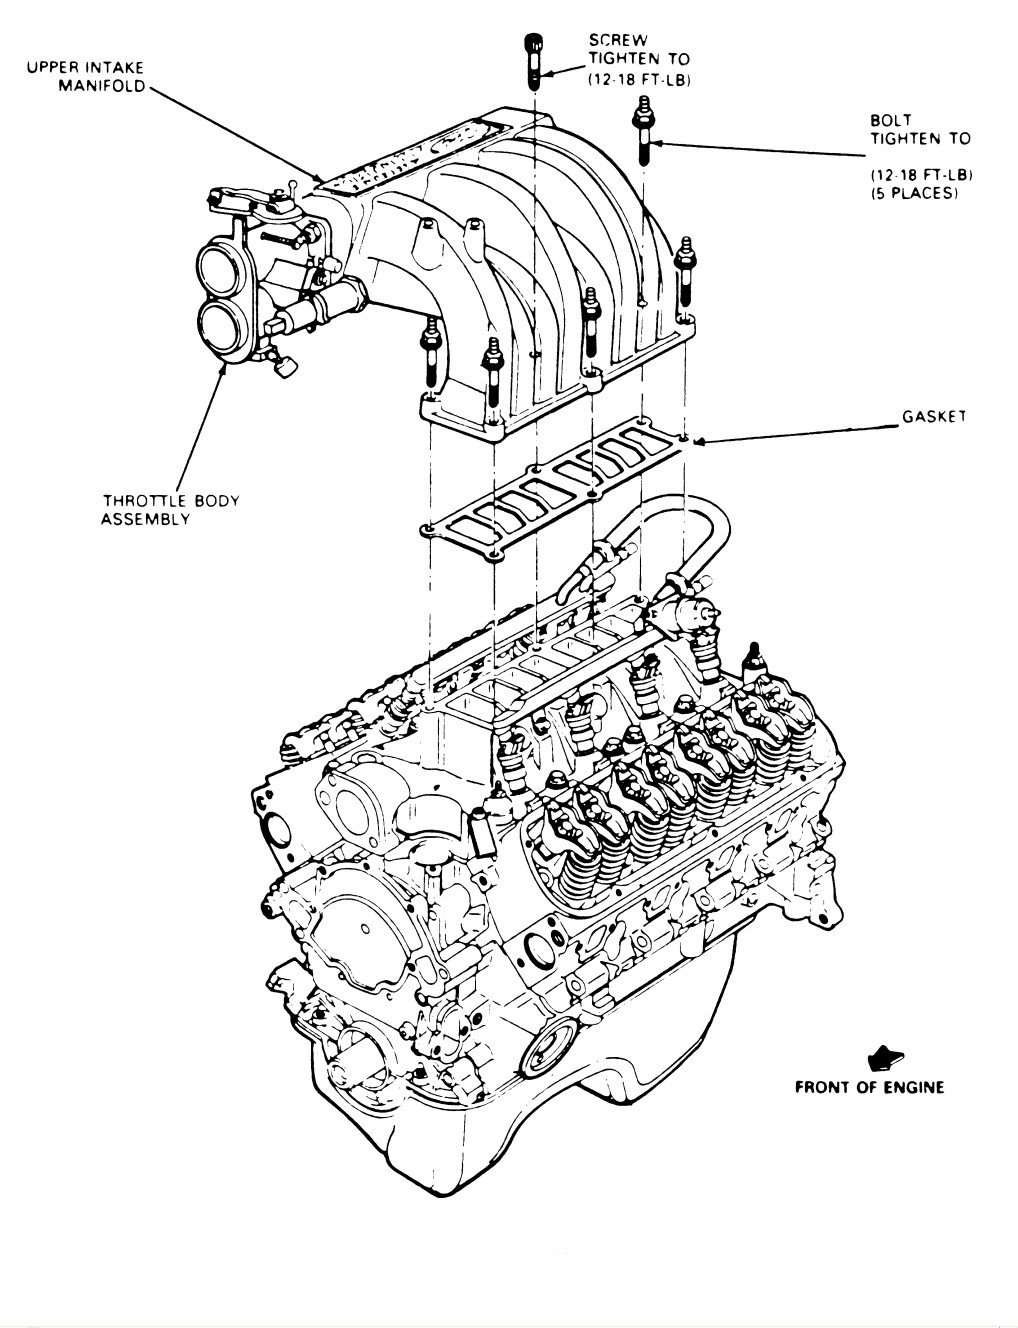 ford f150 5 0 engine diagram ford auto wiring diagram 94 F150 5 0 Motor  Diagram 4 2 Liter Ford Engine Diagram 2005 Map Control